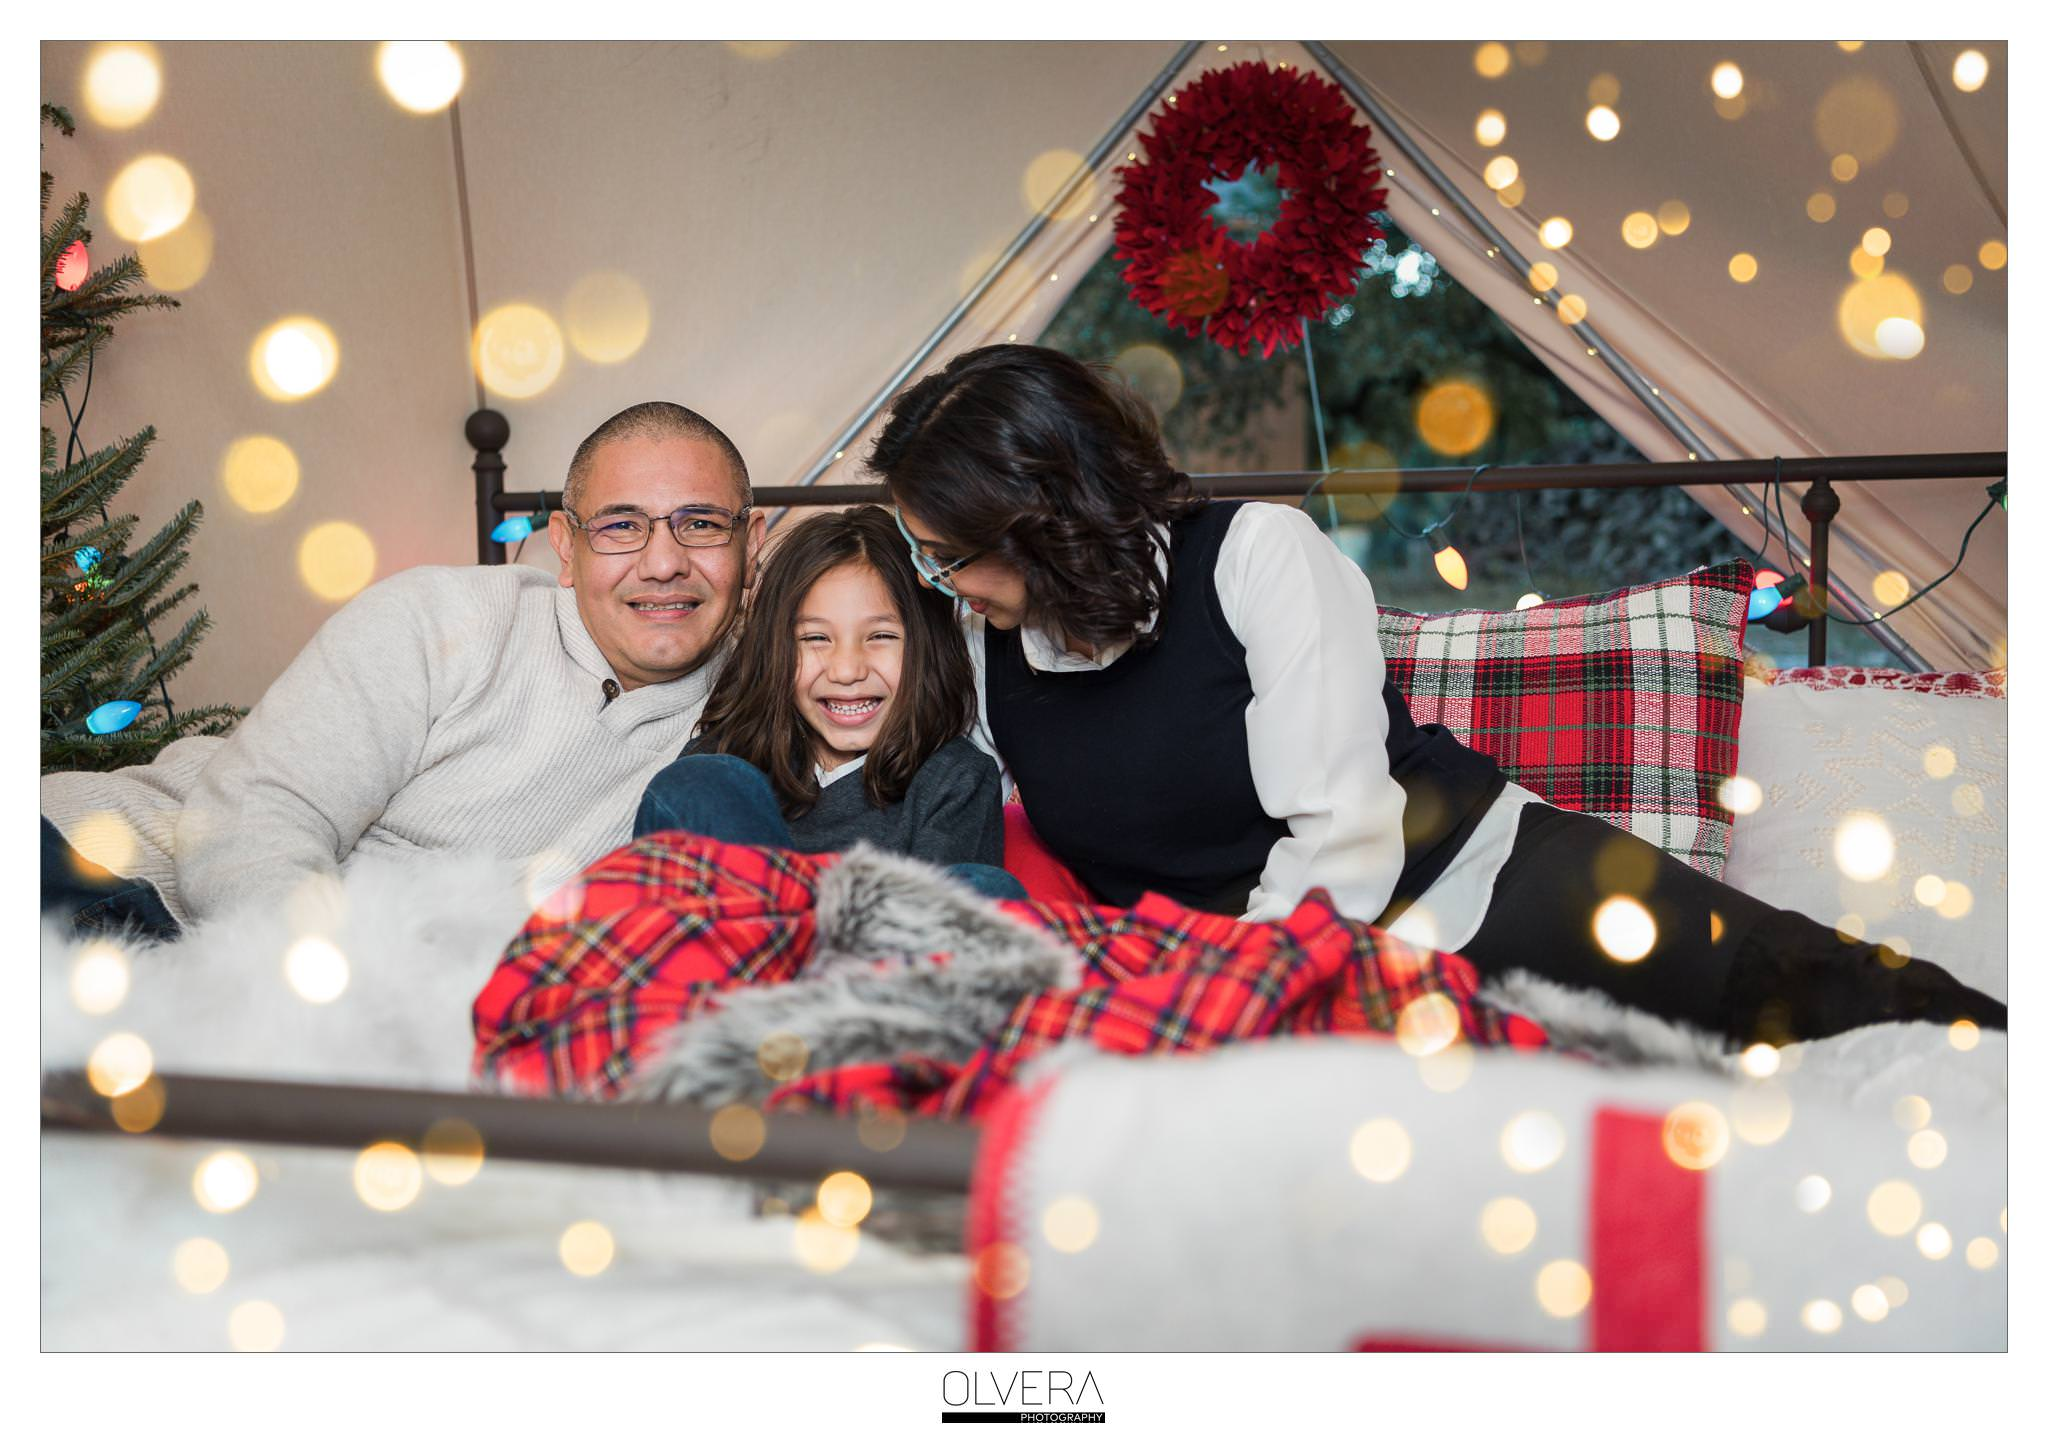 San-Antonio-Mini-Sessions_Christmas-Cabin-Tent_Olvera-Photography-9